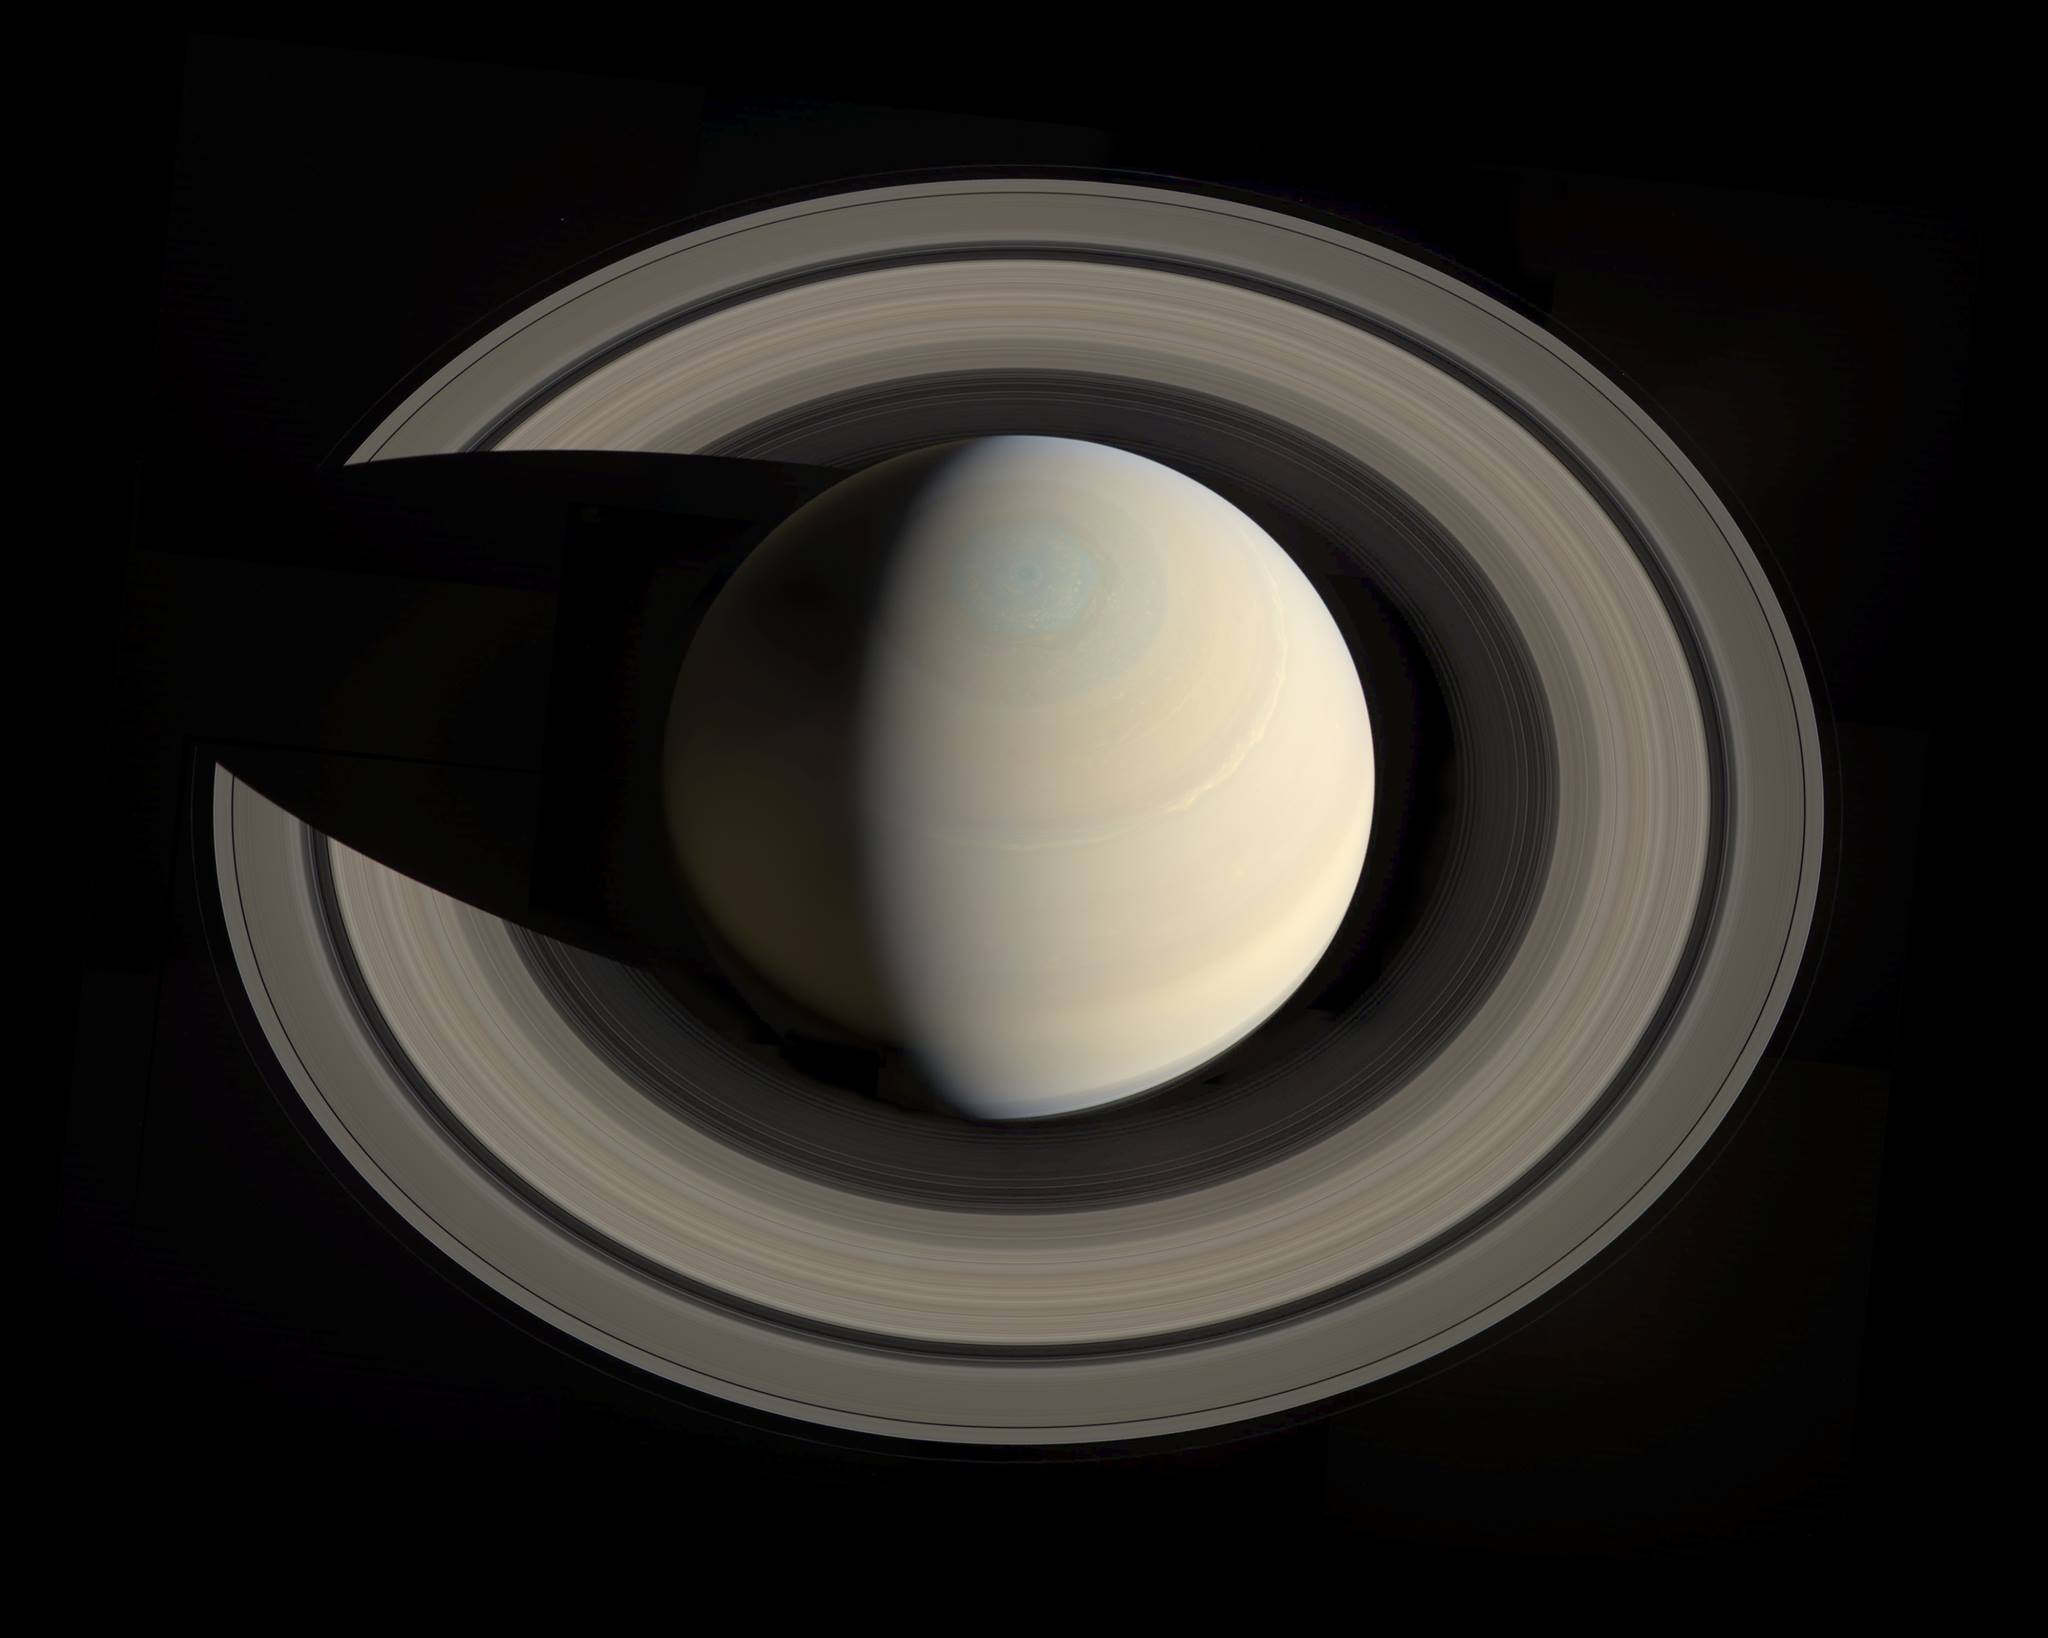 Actual Photo Actual Photo of Saturn Rings